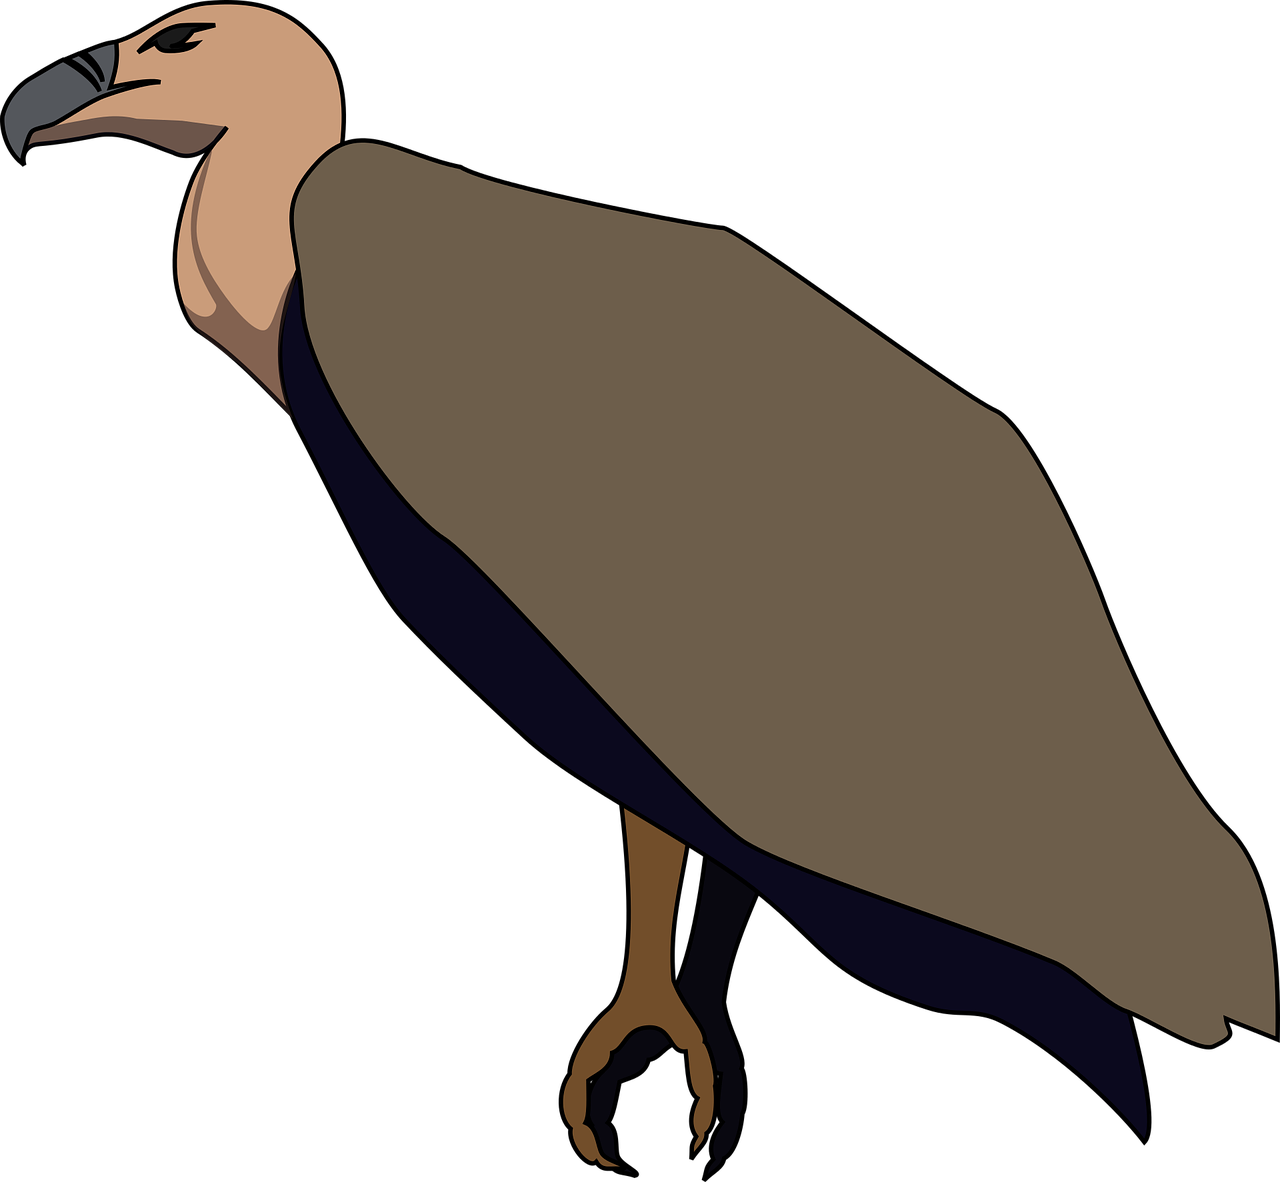 Download Free Photo Of Alphabet Word Images Carrion Scavenger Vulture Wildlife From Needpix Com